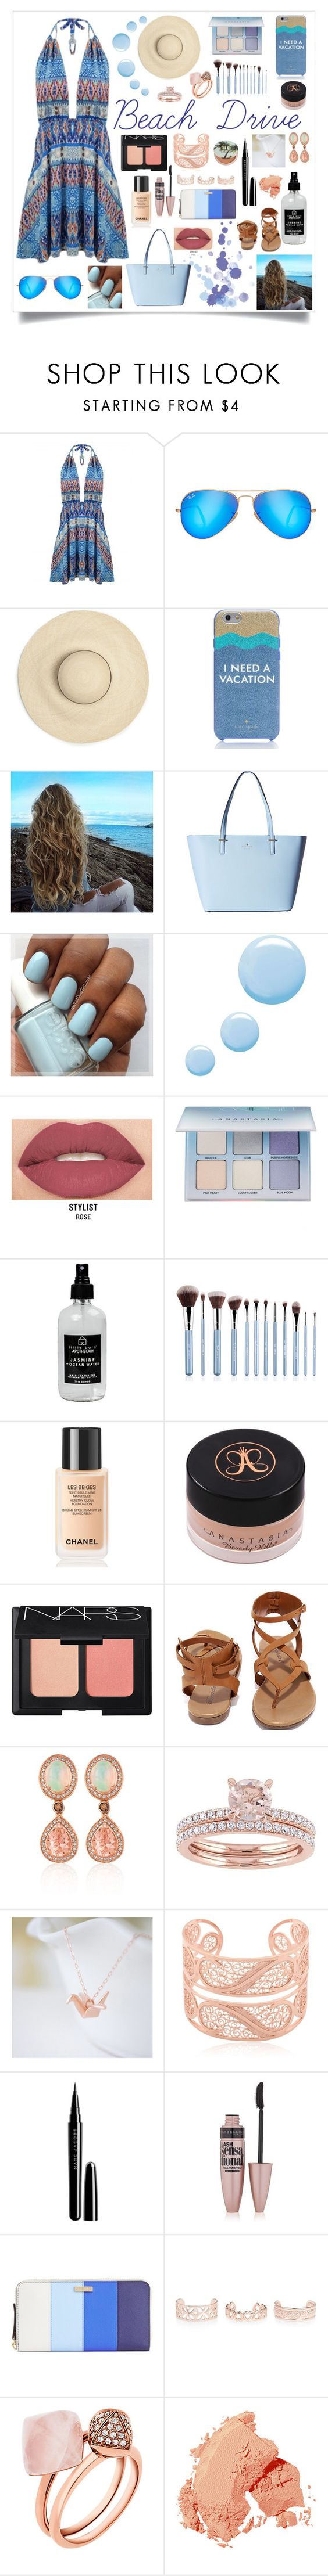 """""""Beach Drive! xx"""" by princessfashion22 ❤ liked on Polyvore featuring Ray-Ban, Kate Spade, Topshop, Smashbox, Anastasia Beverly Hills, Little Barn Apothecary, Chanel, NARS Cosmetics, Breckelle's and LE VIAN"""